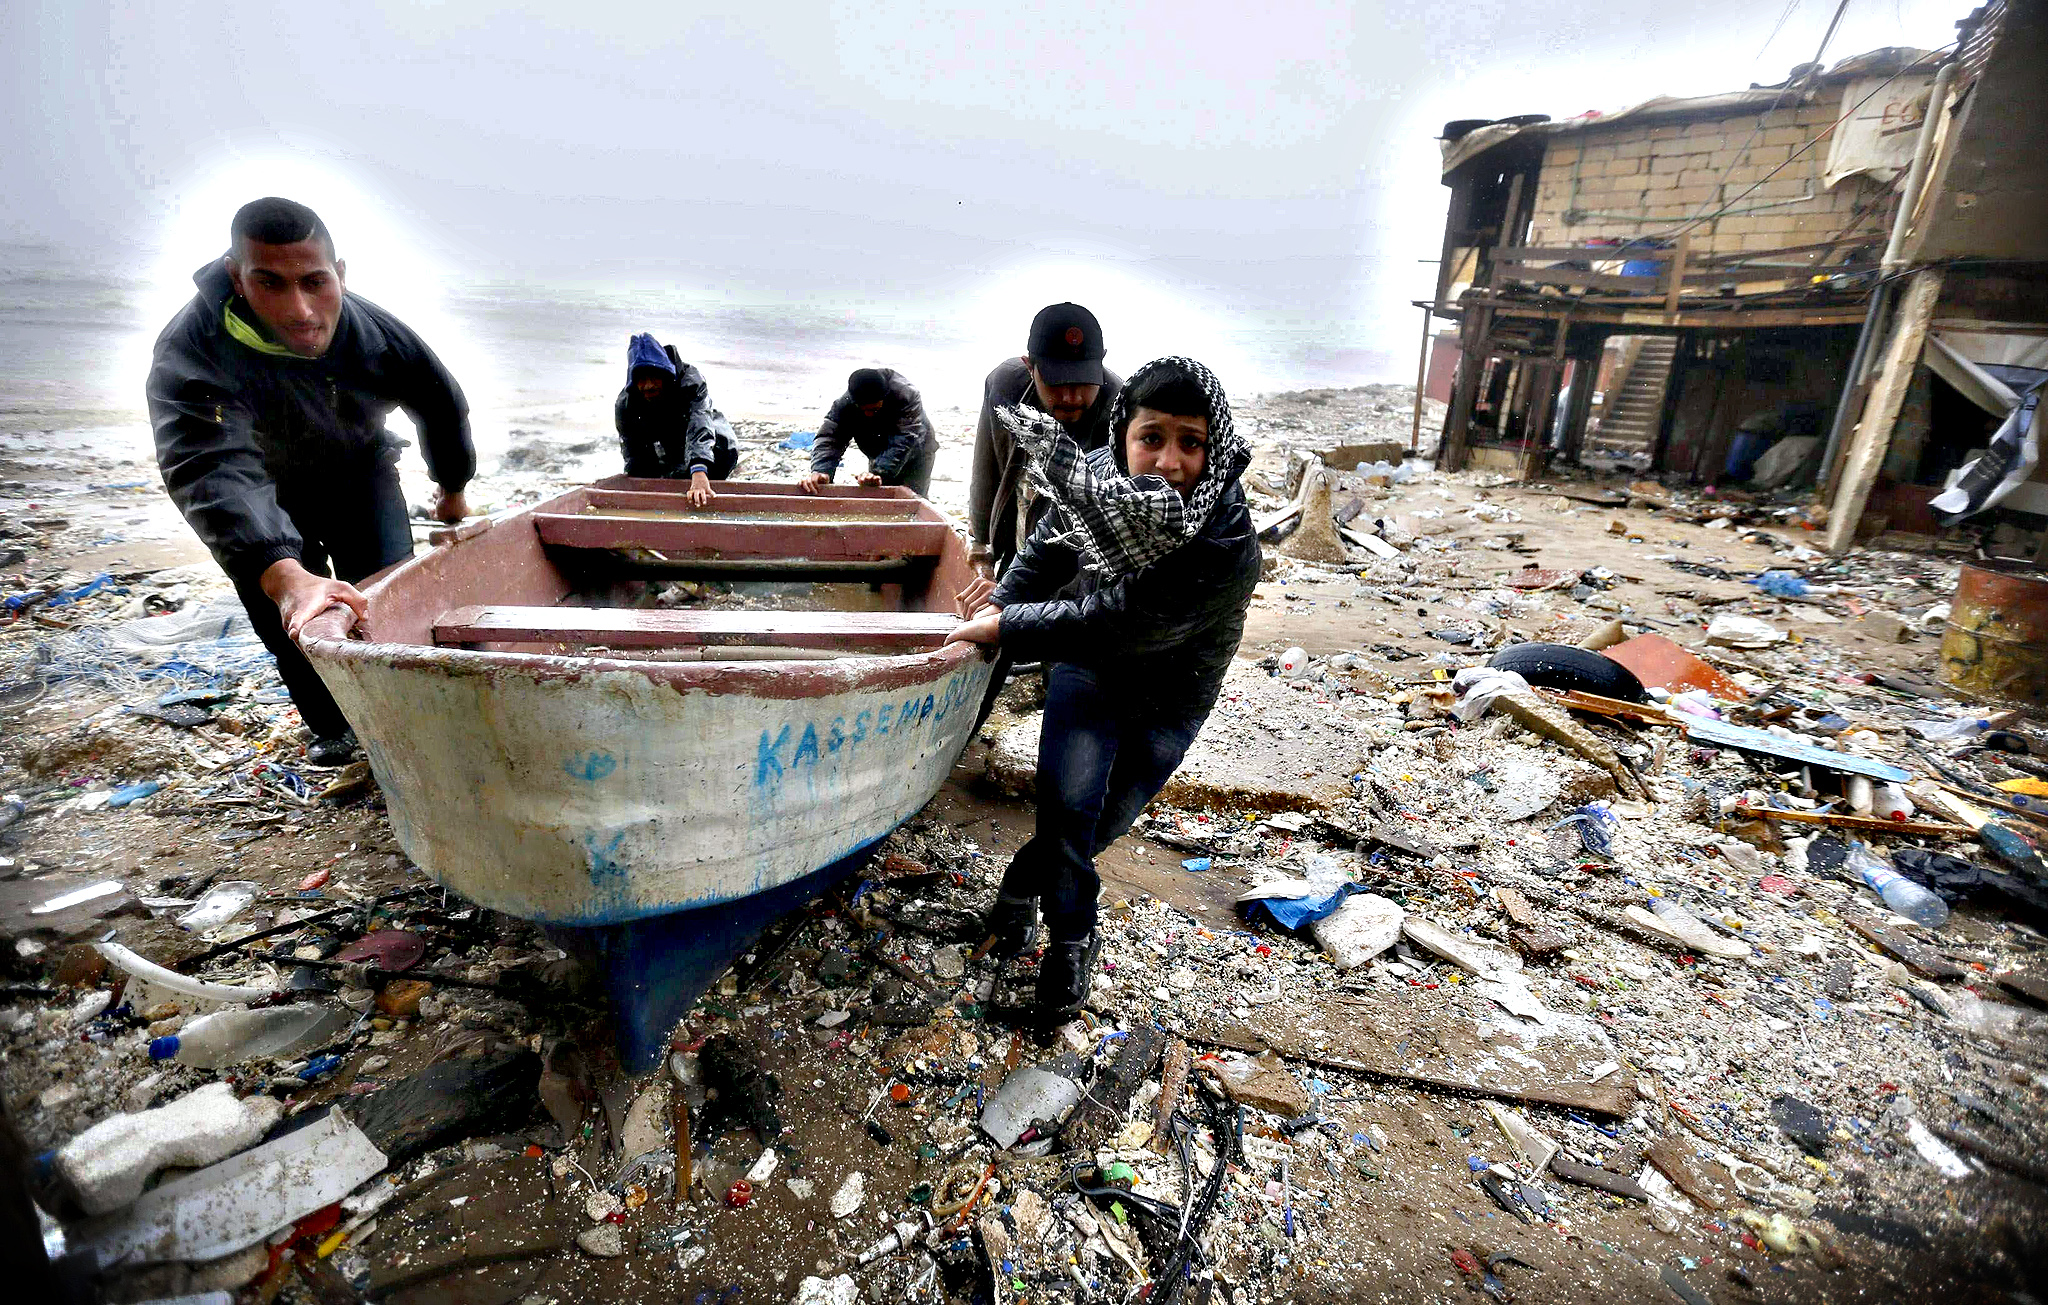 Fishermen move a boat that had been blown inland during a storm, by the seaside in Beirut on Wednesday